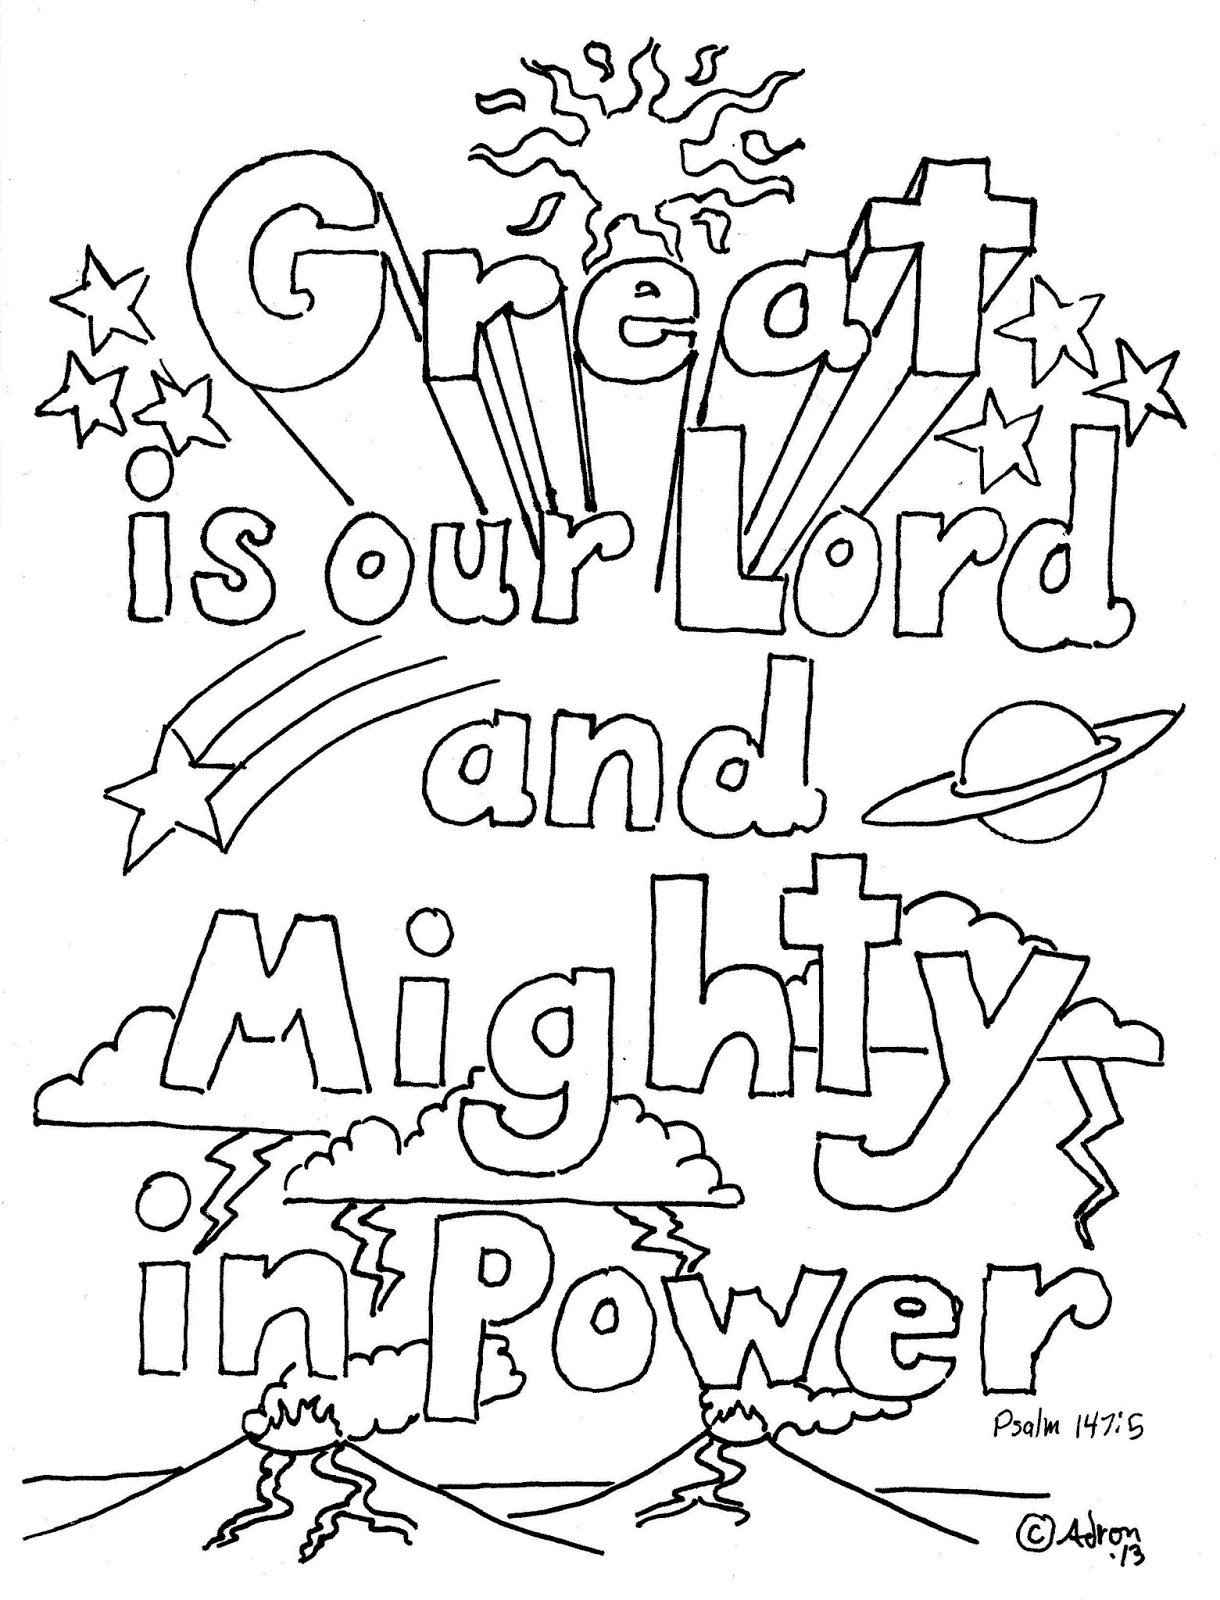 Coloring Pages For Kids By Mr Adron Great Is Our Lord Psalm 147 5 Print And Color Page